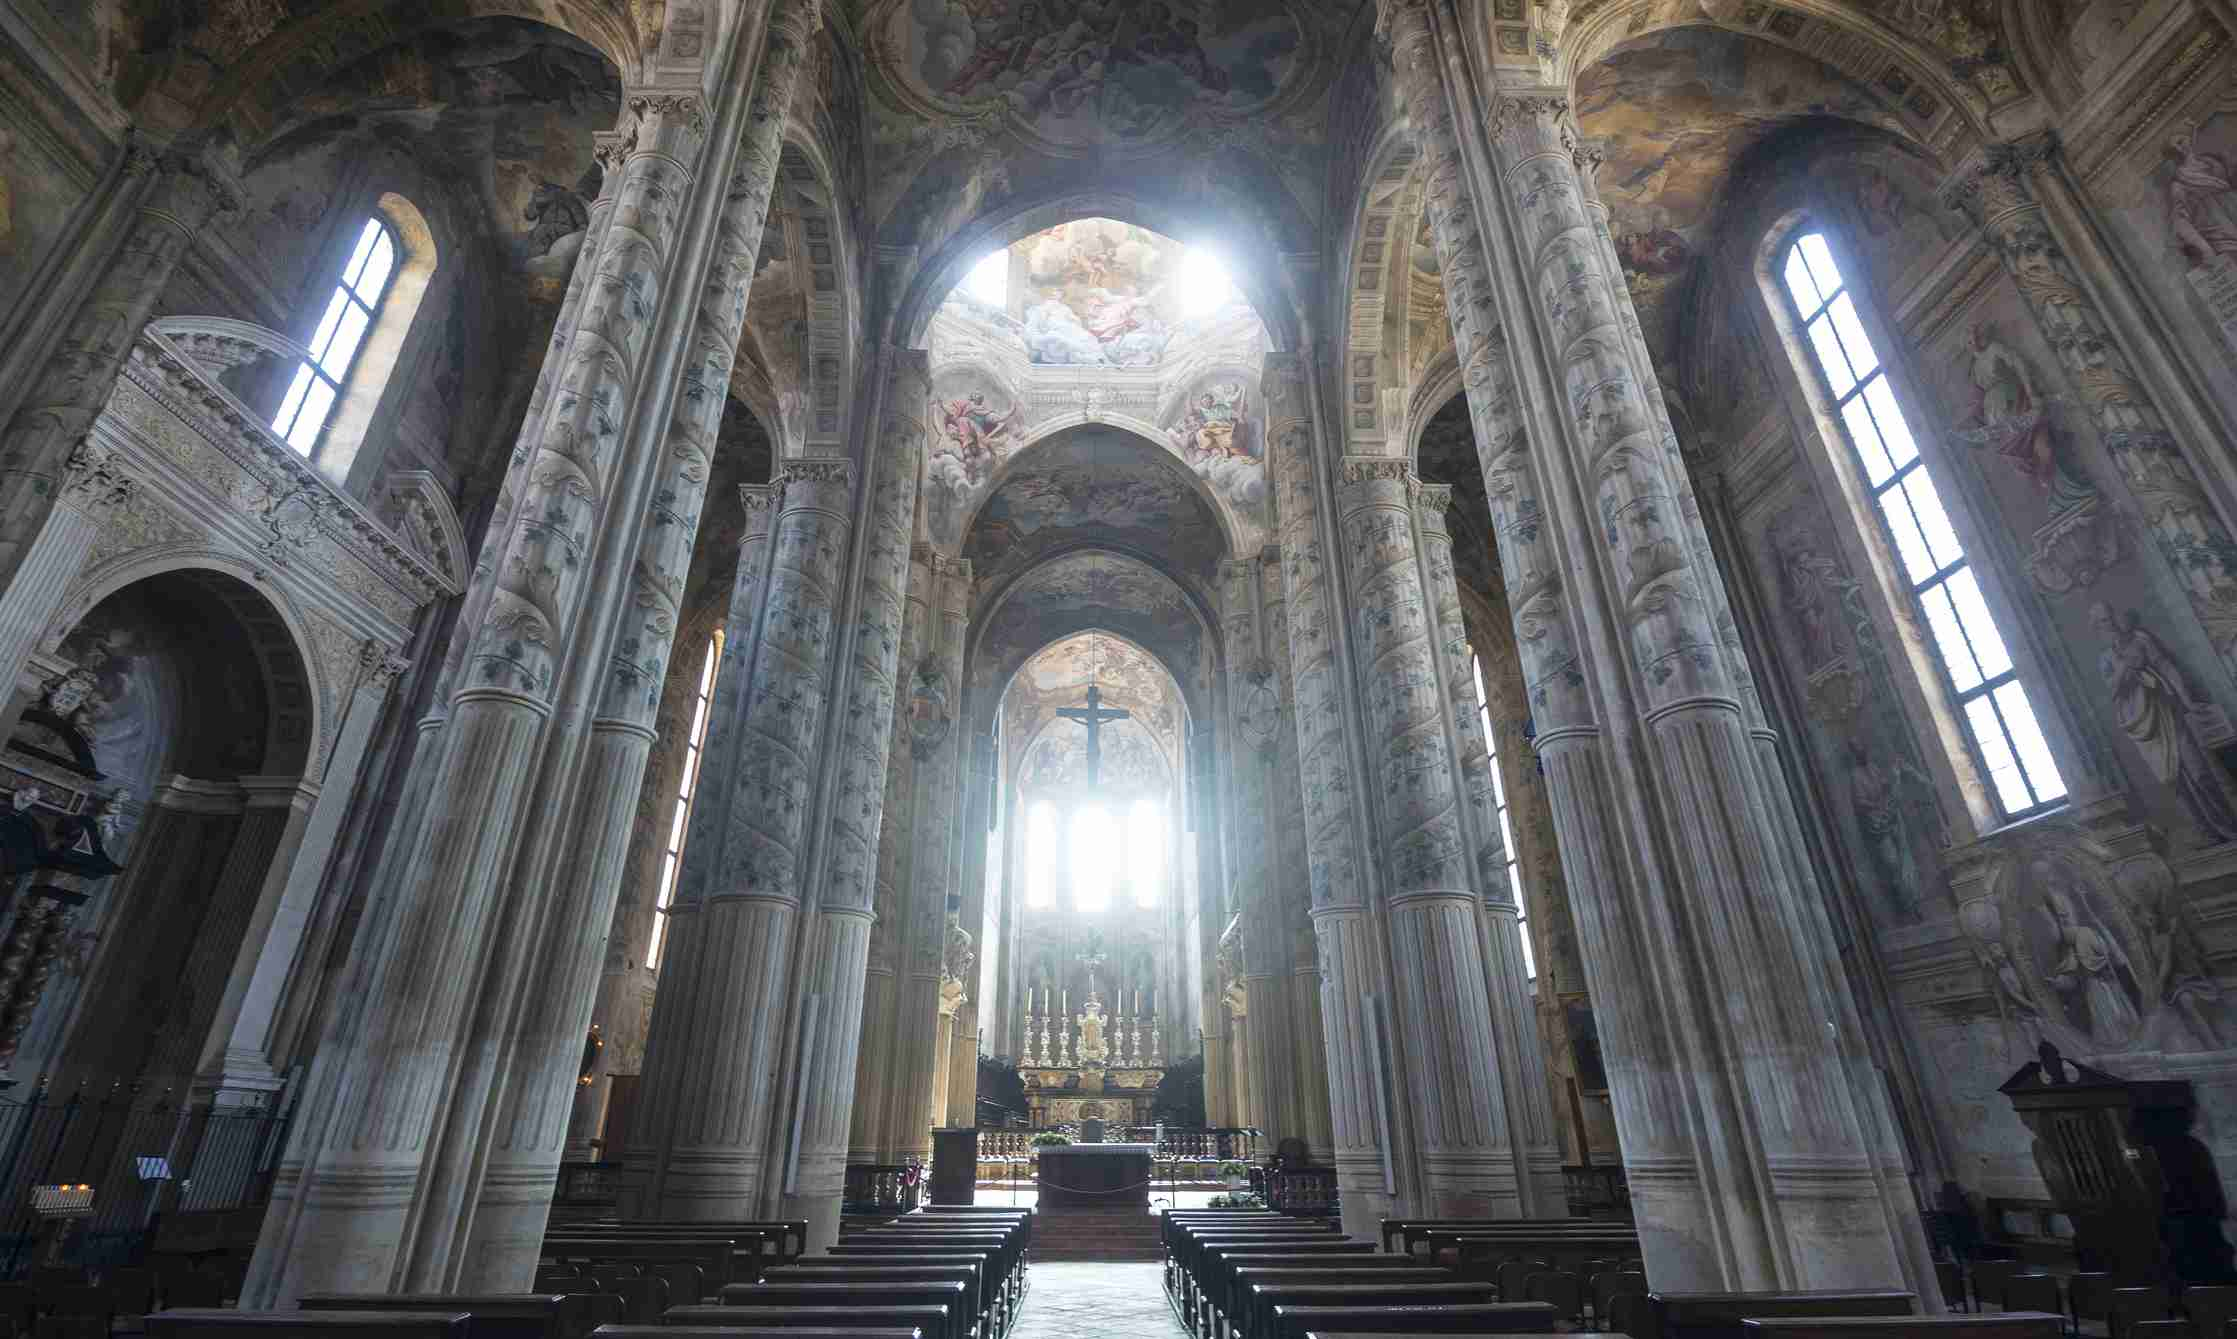 Cathedral of Asti, interior. This church, in baroque style, has plenty of fresco paintings and is open to visits.